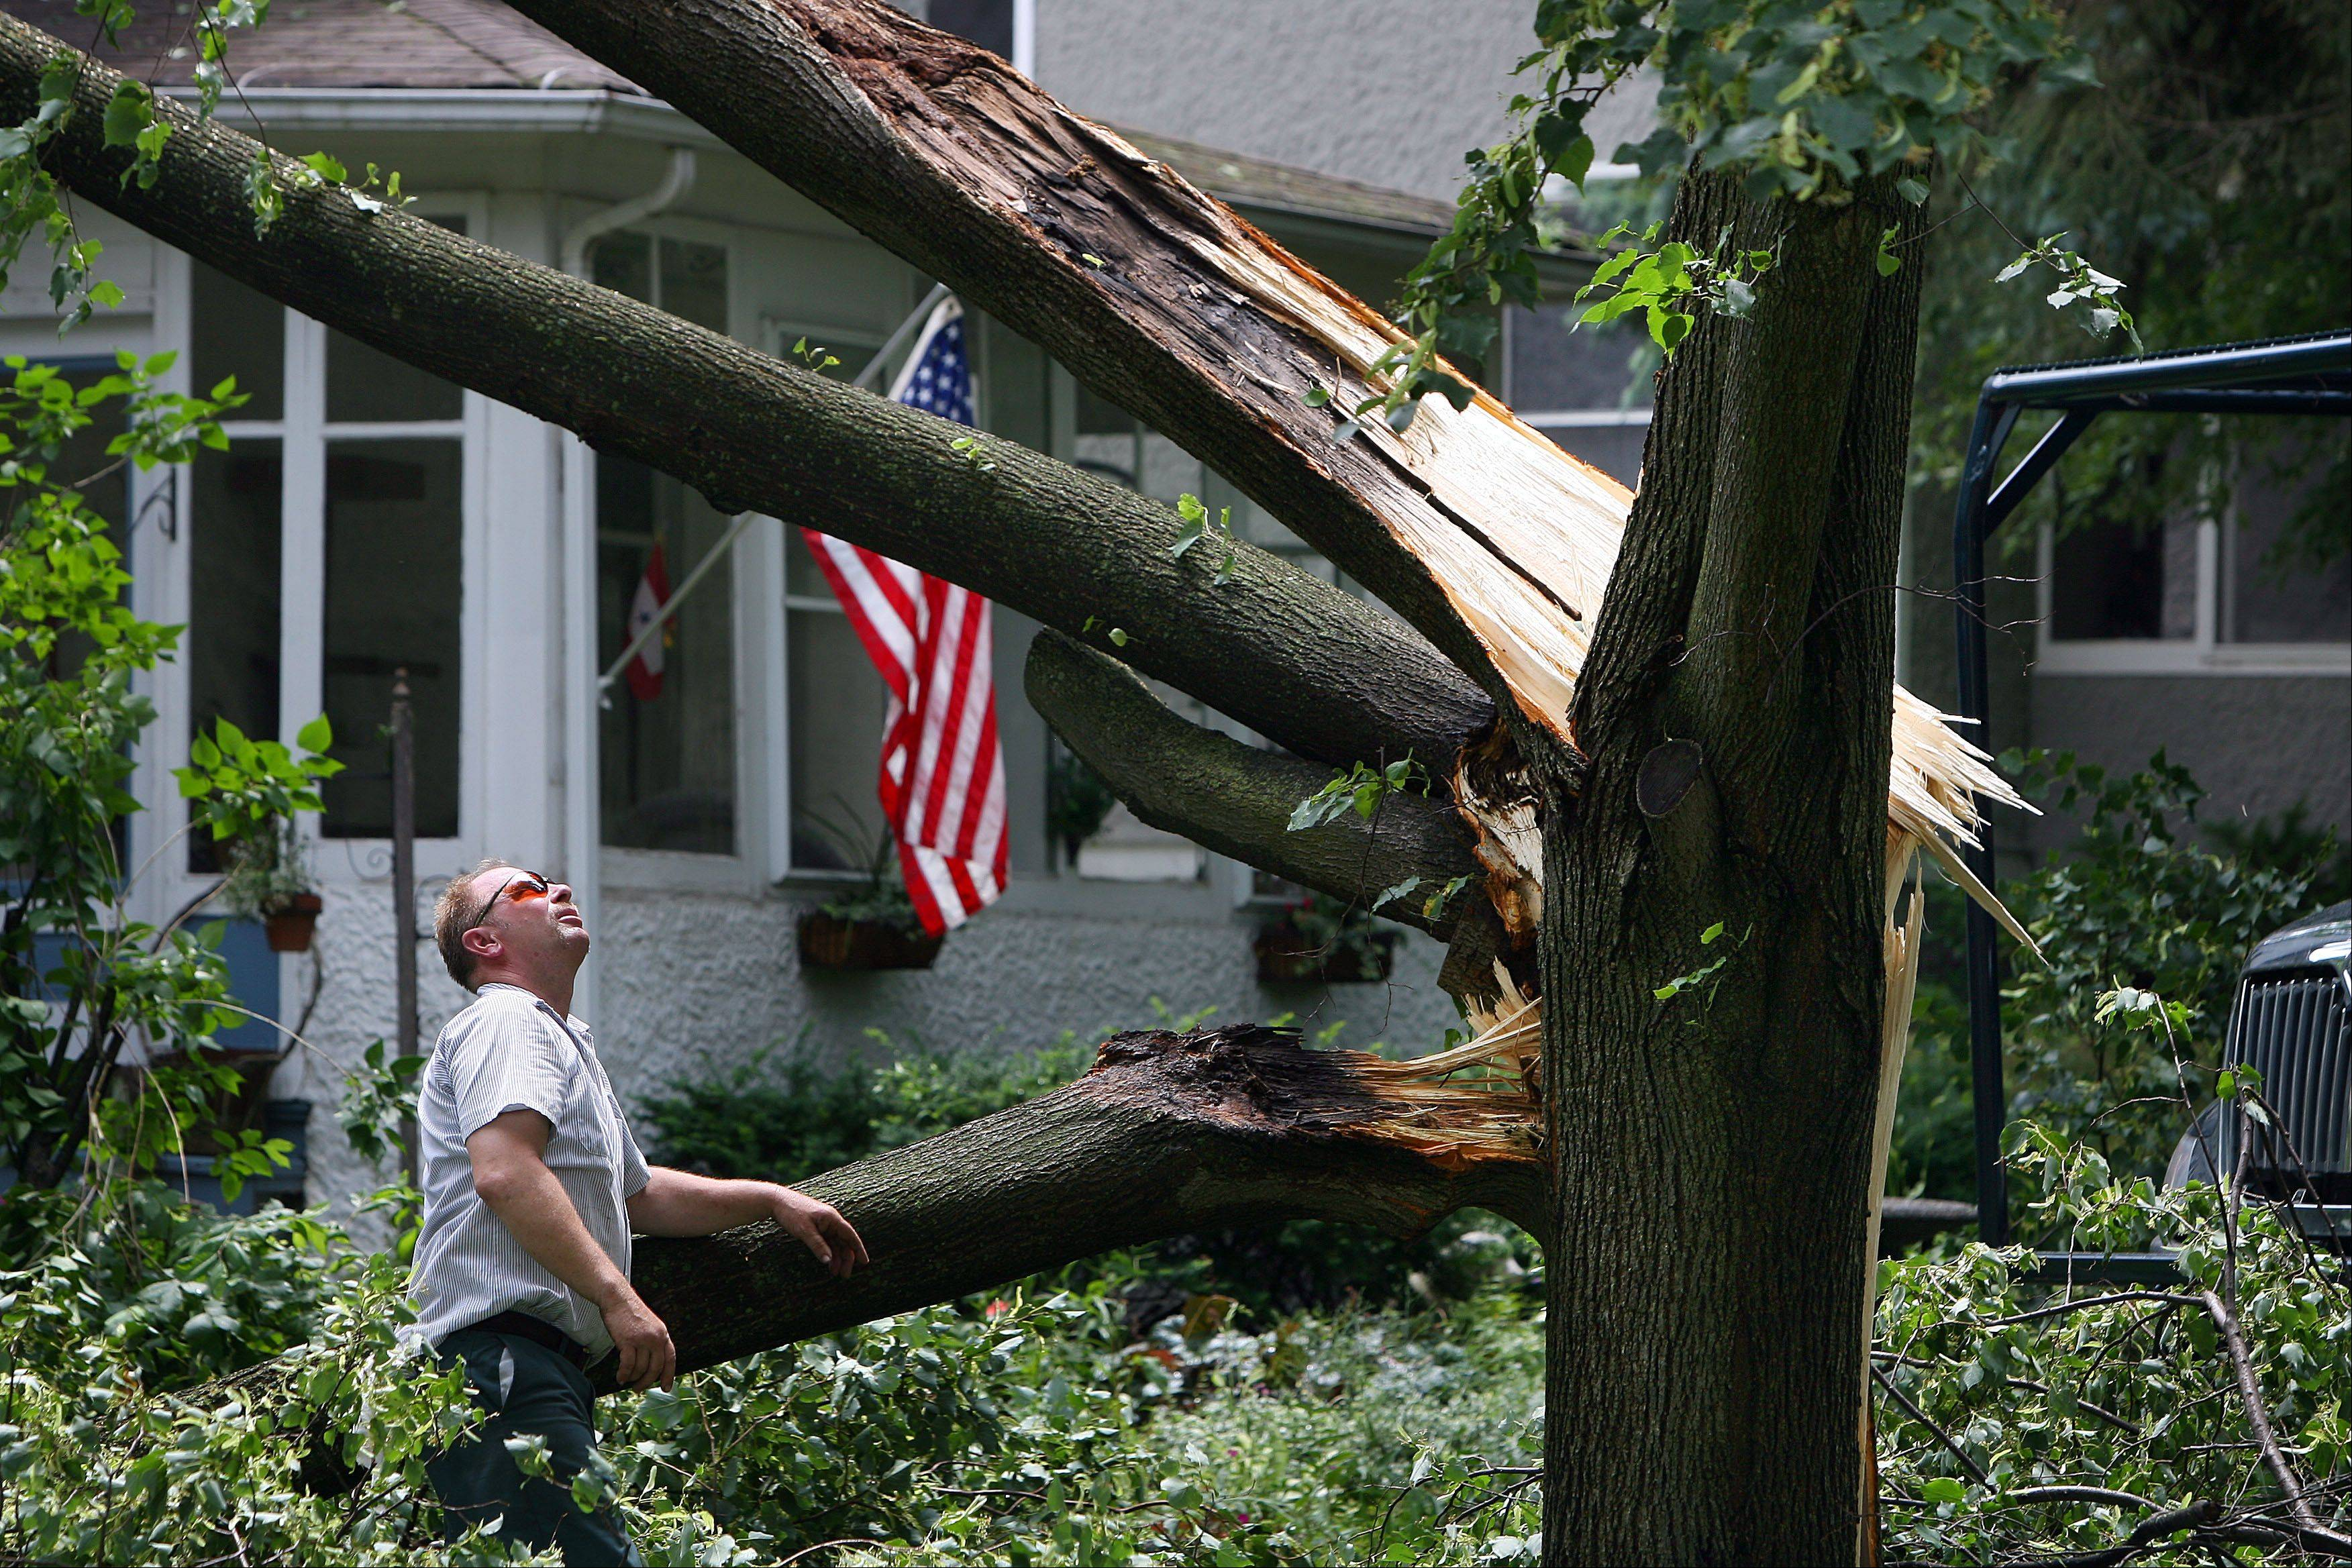 Dennis Matusek with Libertyville Public Works examines this tree that fell into a house on the 200 block of Second Street in Libertyville Monday morning after an intense storm blew through the area.